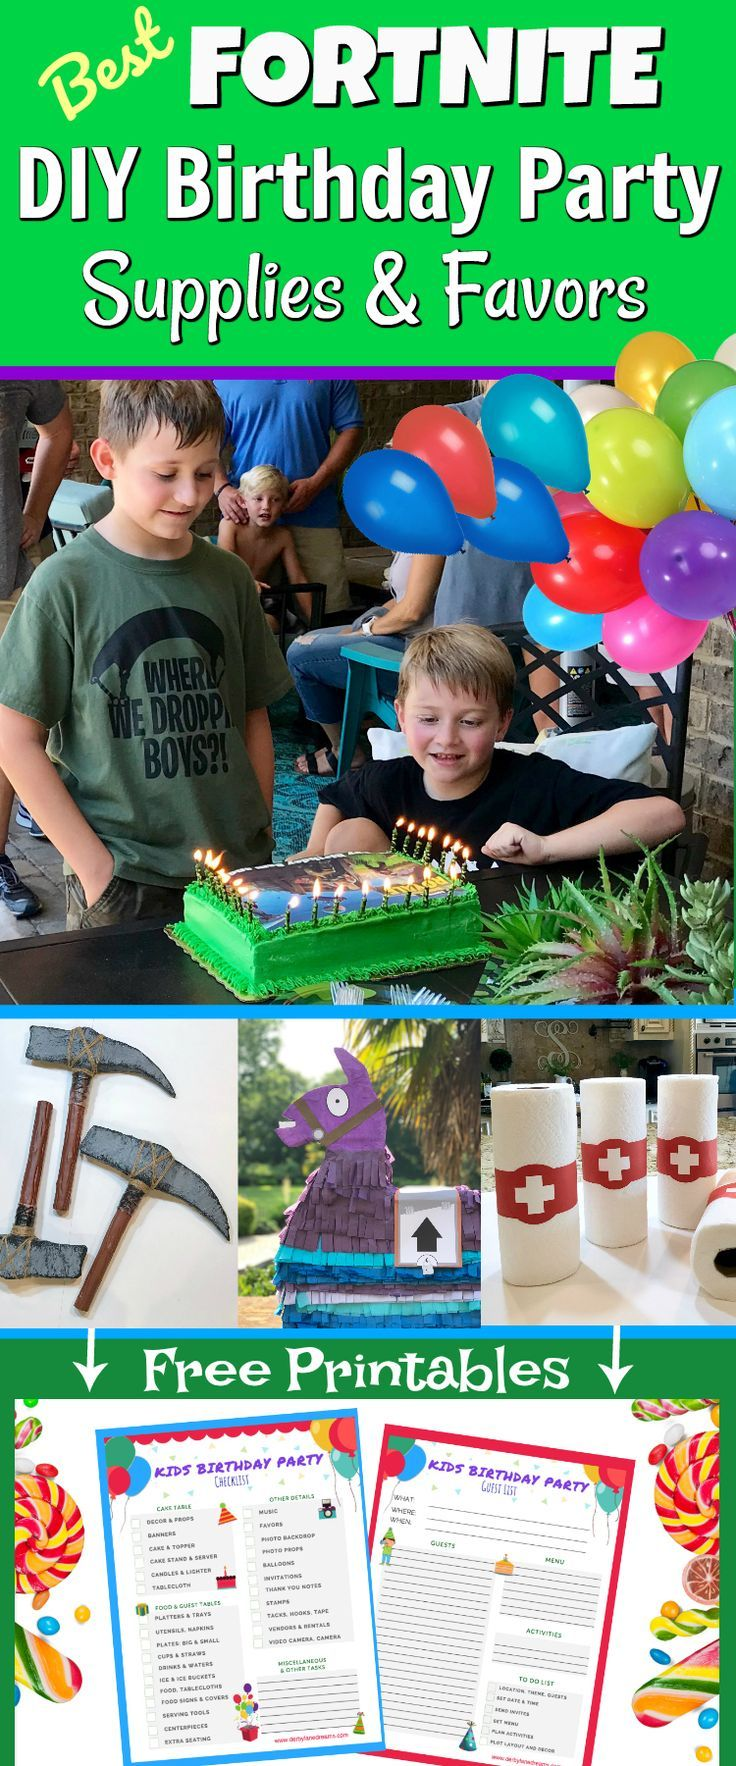 Make the Best Fortnite Battle Royale Birthday Party for your kids with easy, DIY tips and ideas for making your own supplies and party favors on a budget! Free Fortnite Printables and Fortnite templates! Fortnite party favor ideas for Fortnite video game party. Perfect for kids, teens, tweens & adults! Boys girls & guests will love supply drop goody bags! #fortnite #birthdayparty #kidsbirthday #fortniteparty #gamerparty #gamer #fortniteseason6 #fortnitebr #forkids #partydecor #partysupplies